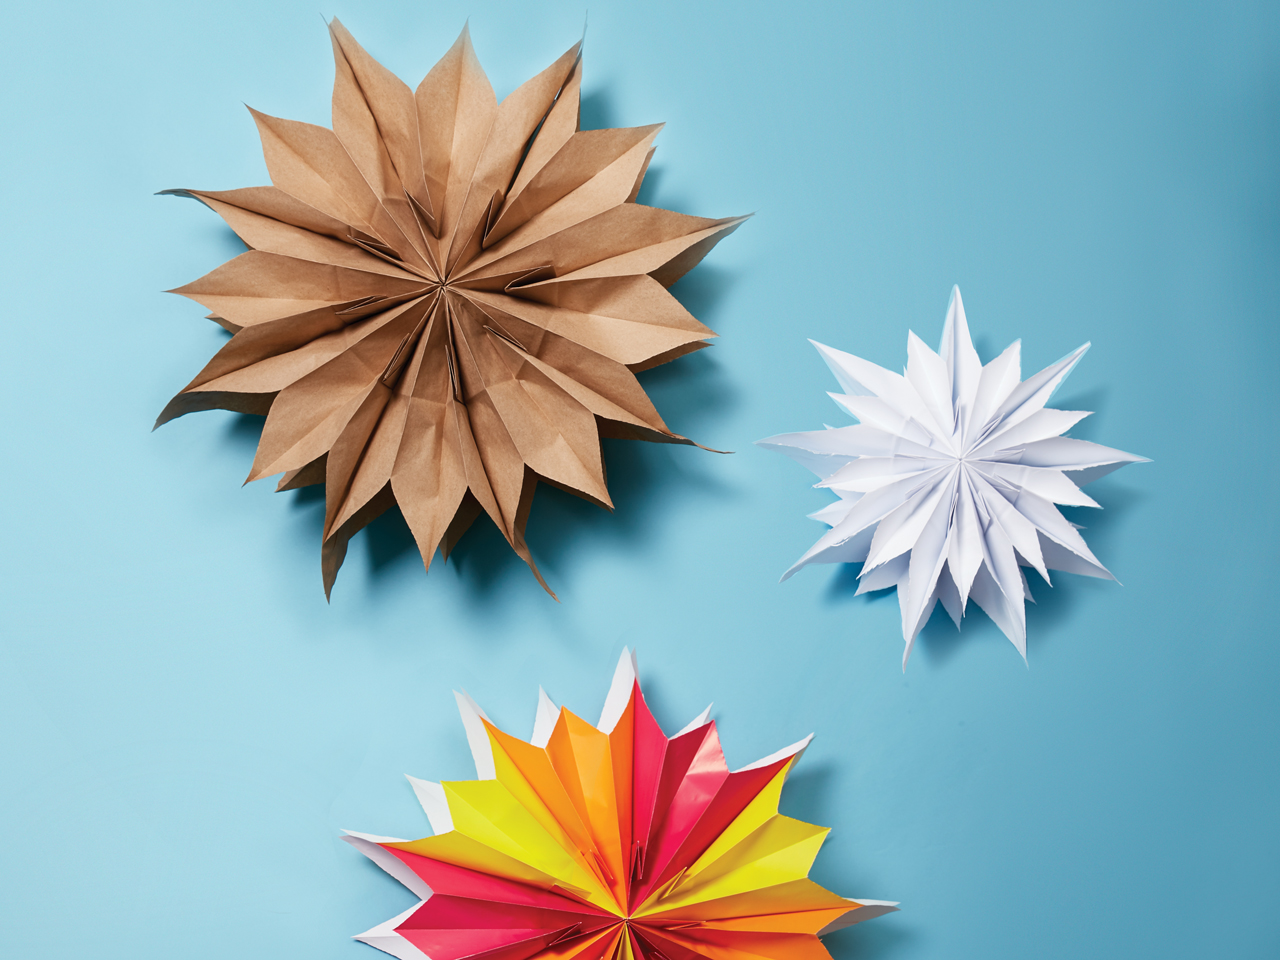 How To Make Paper Bag Star Decorations